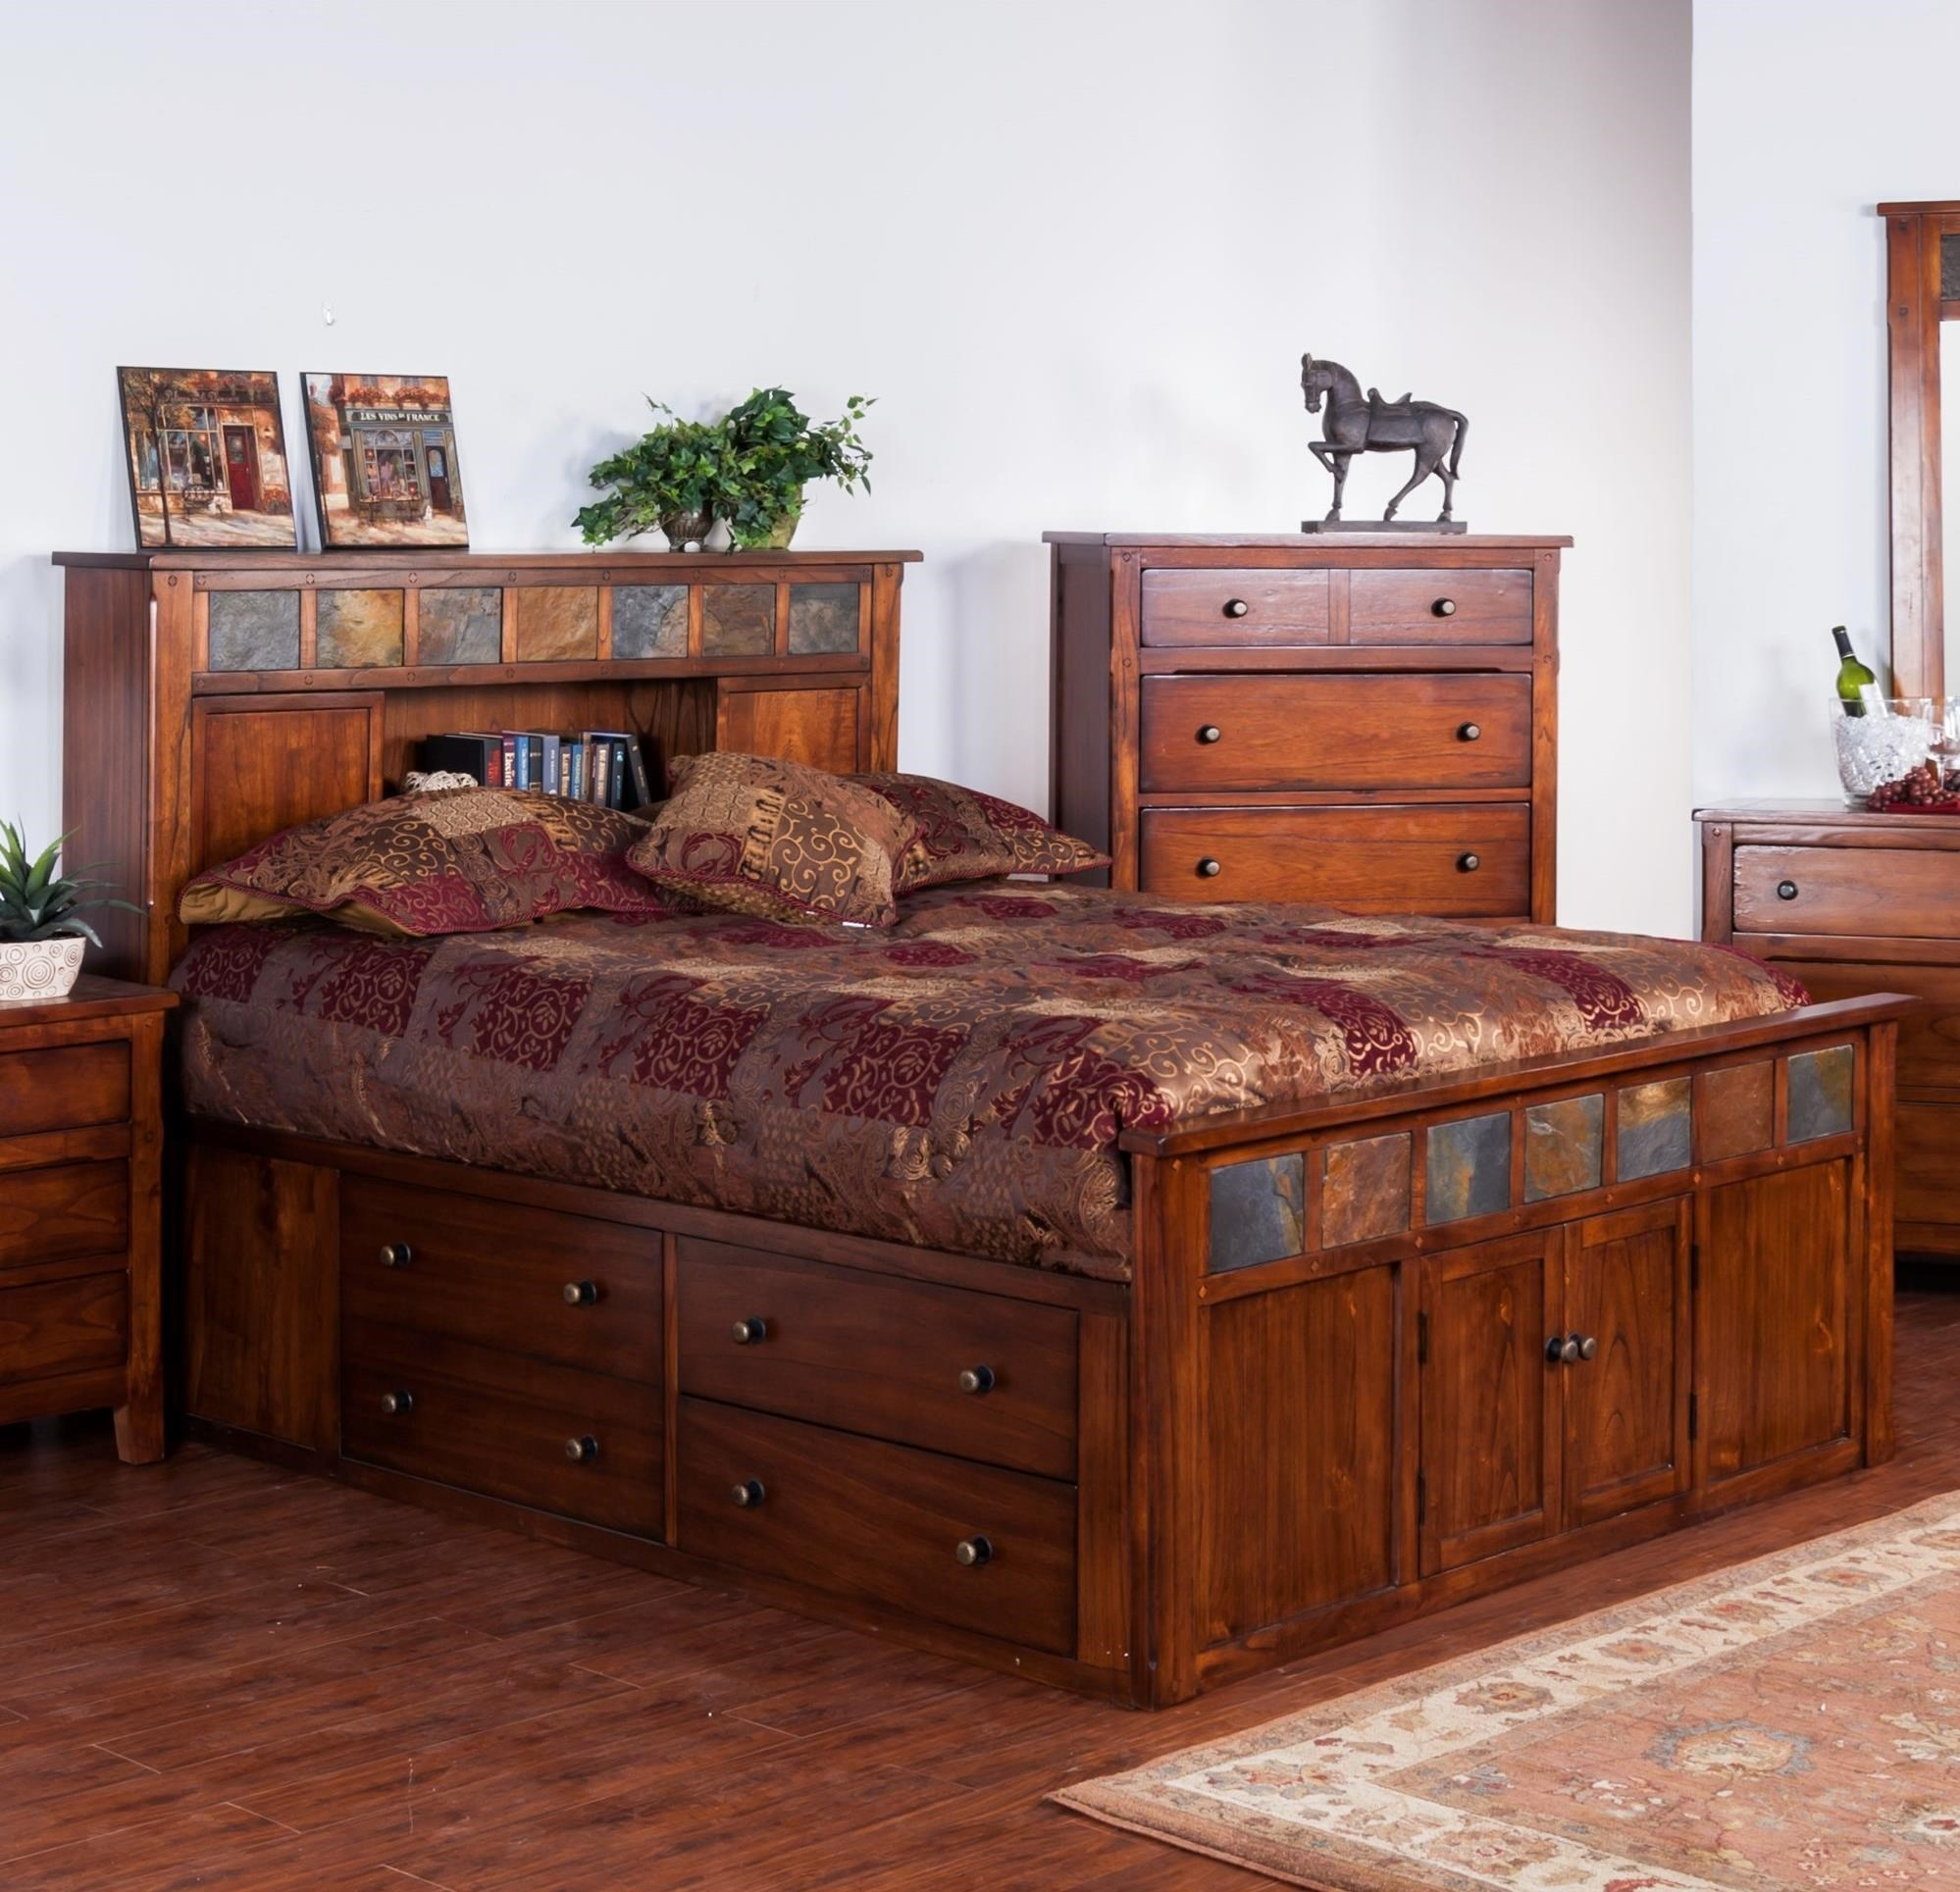 Santa Fe Bedroom Furniture Queen Storage Beds Martini Suite California King Storage Bed